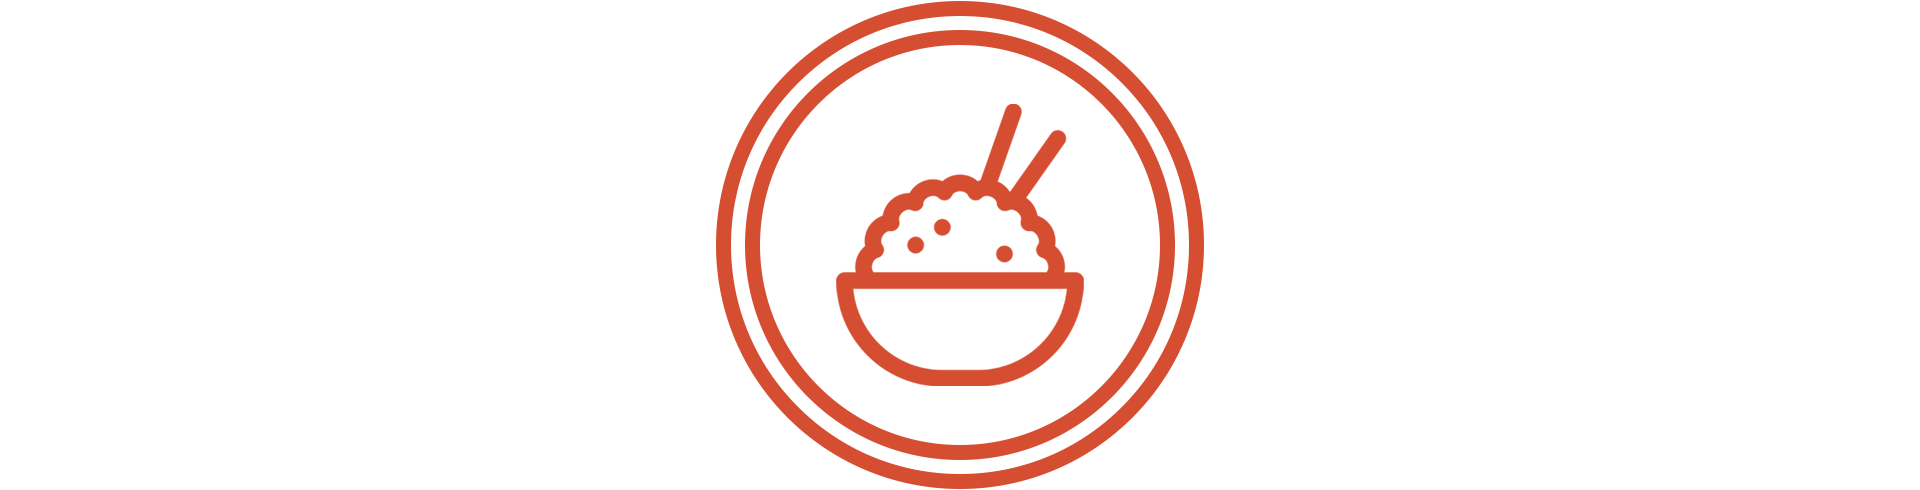 akioni-catering-rice-icon-red-circle.png